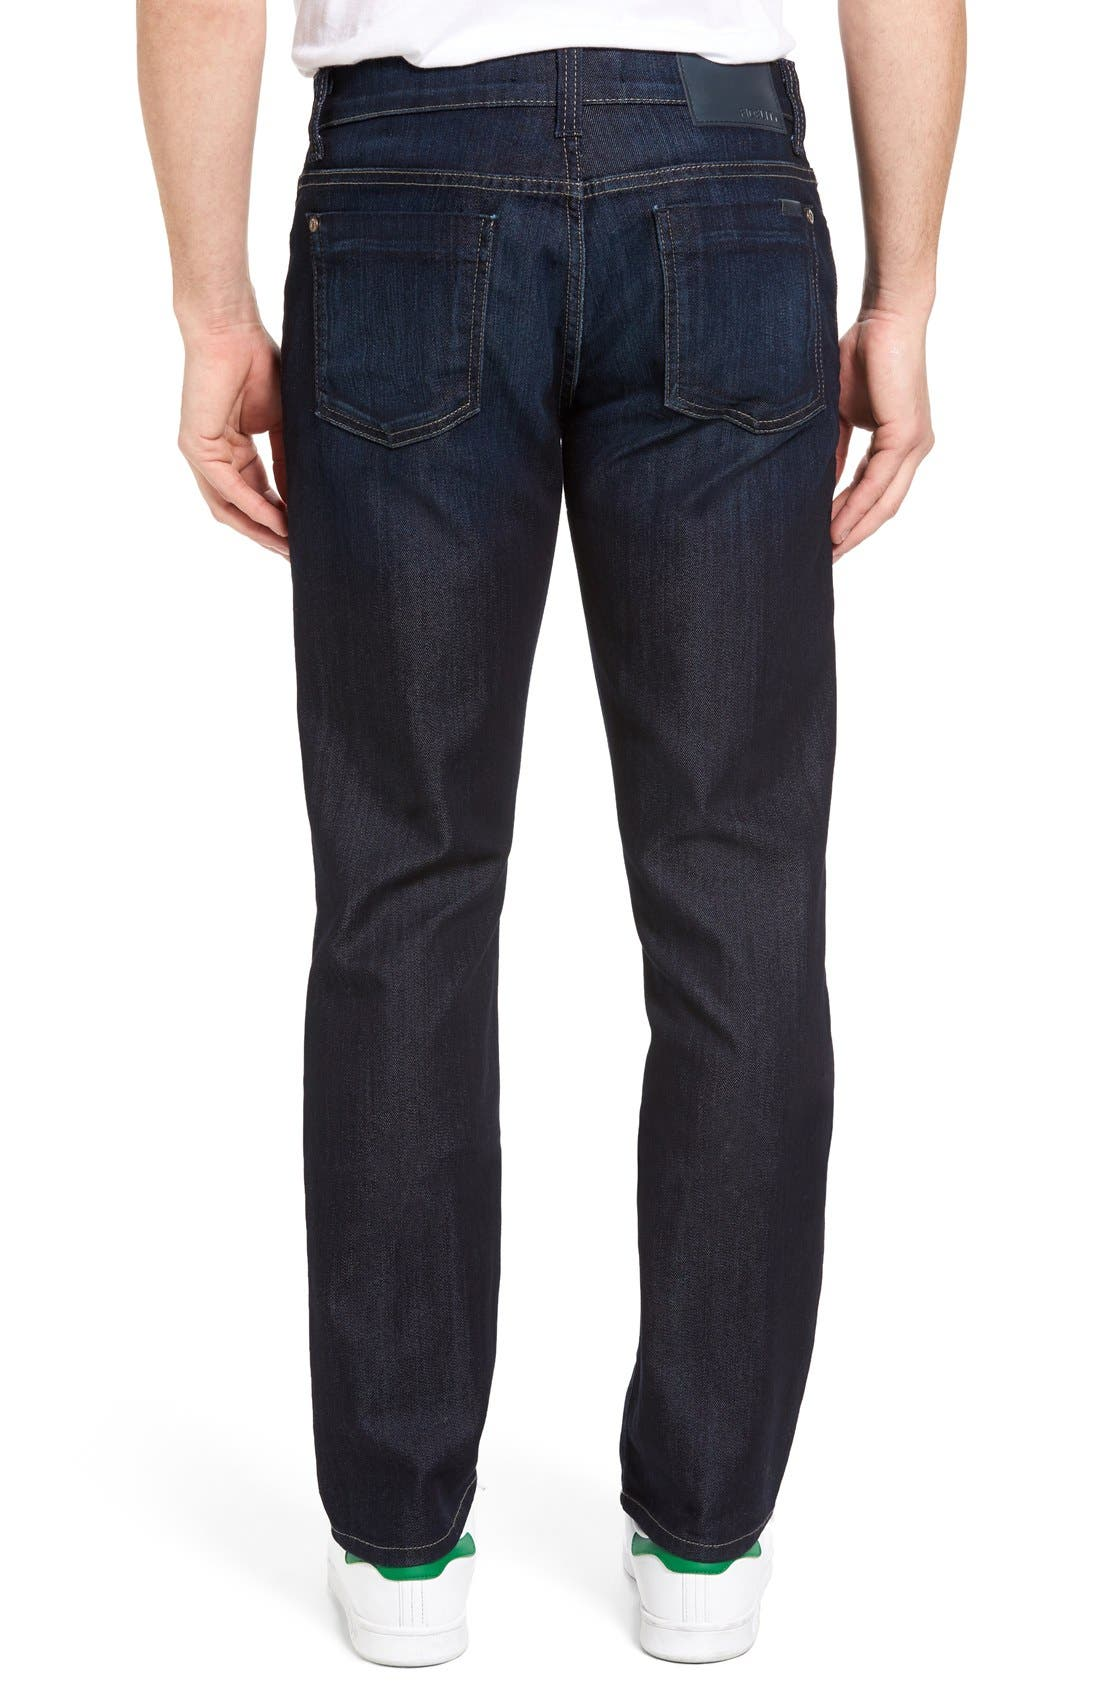 Impala Straight Leg Jeans,                             Alternate thumbnail 2, color,                             Lunar Blue